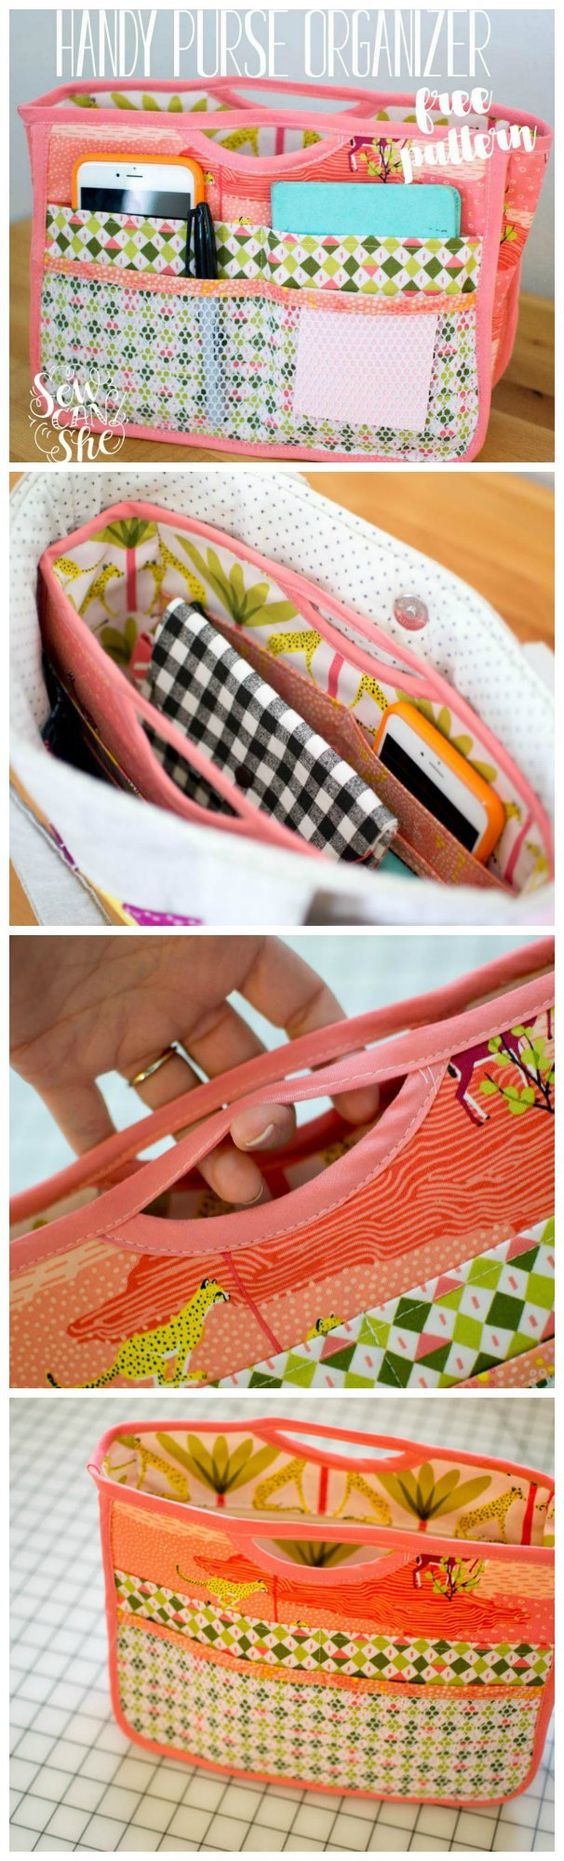 4 Awesome DIY Ideas for Your Purse